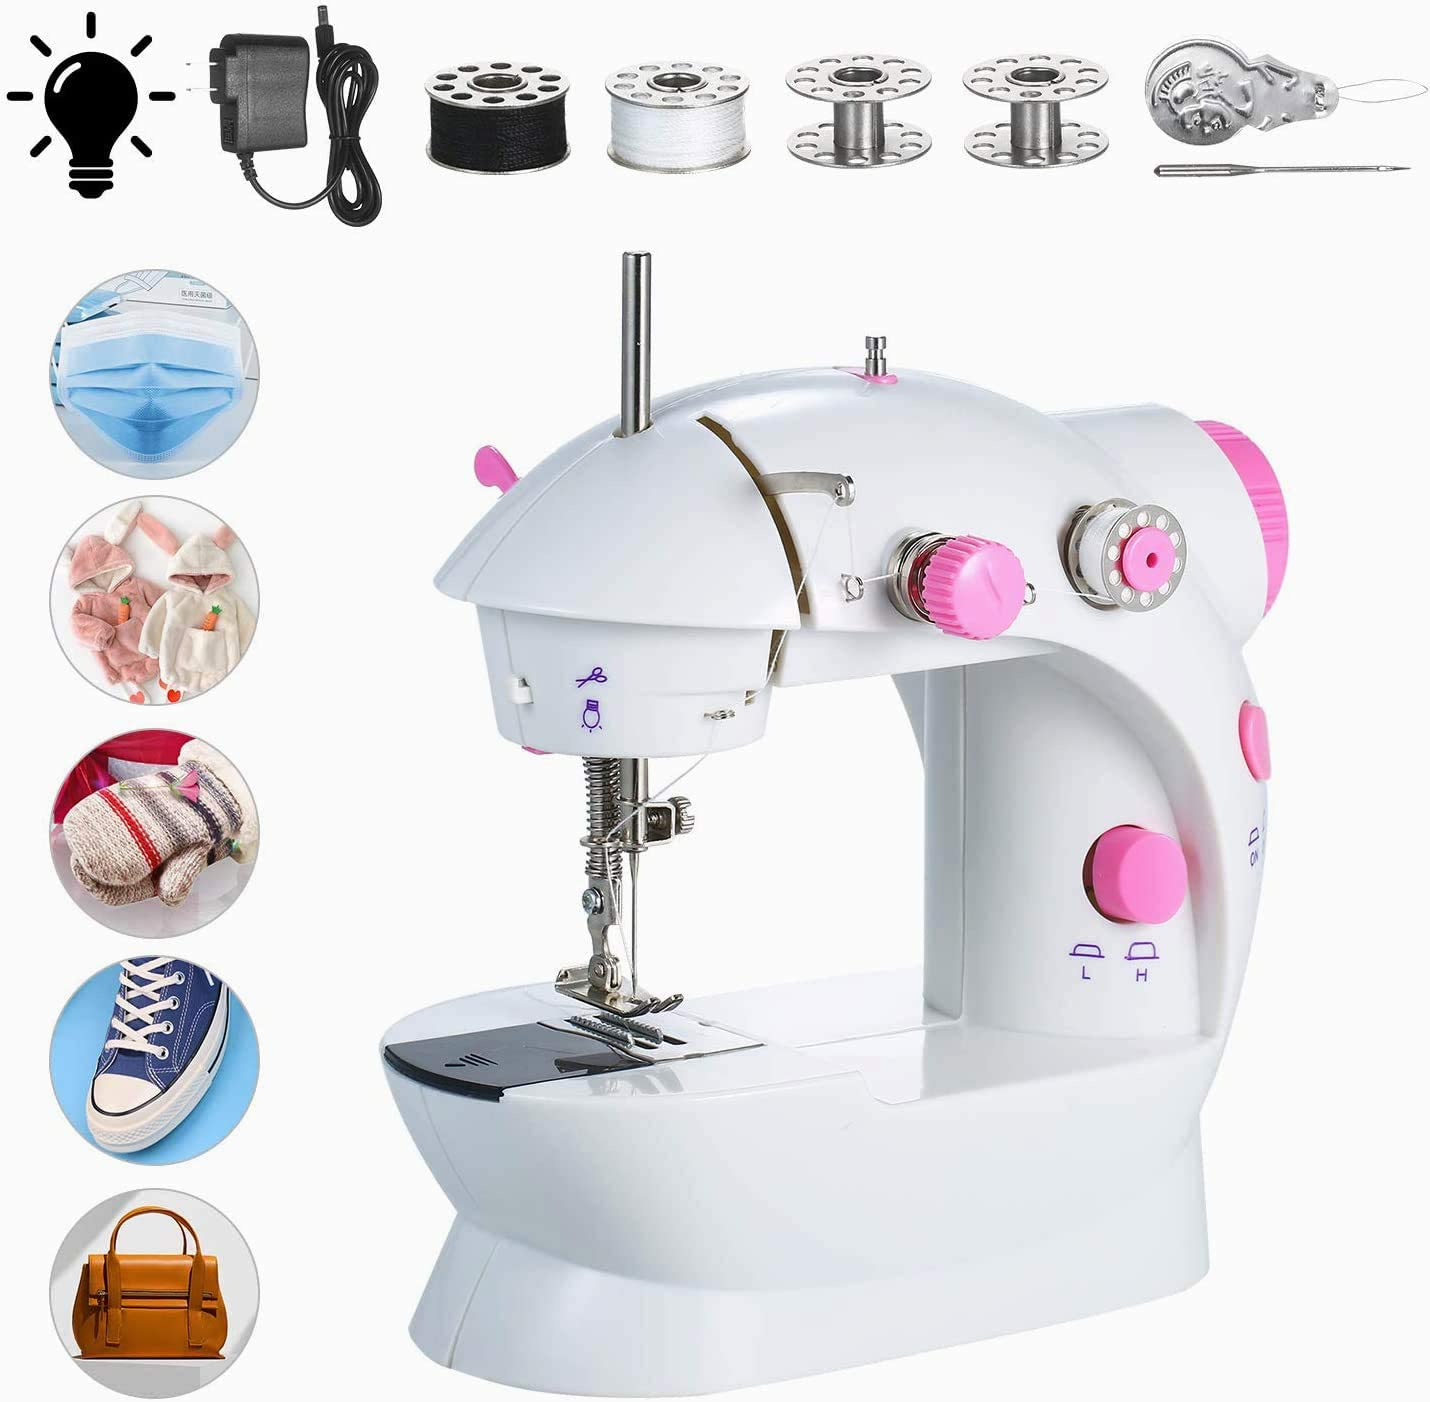 for Household Beginner DIY Project Portable Handheld Sewing Machines Double Thread Portable Electric Household Multifunctional Clothes Fabrics Electric Sewing Machine htovila Mini Sewing Machine